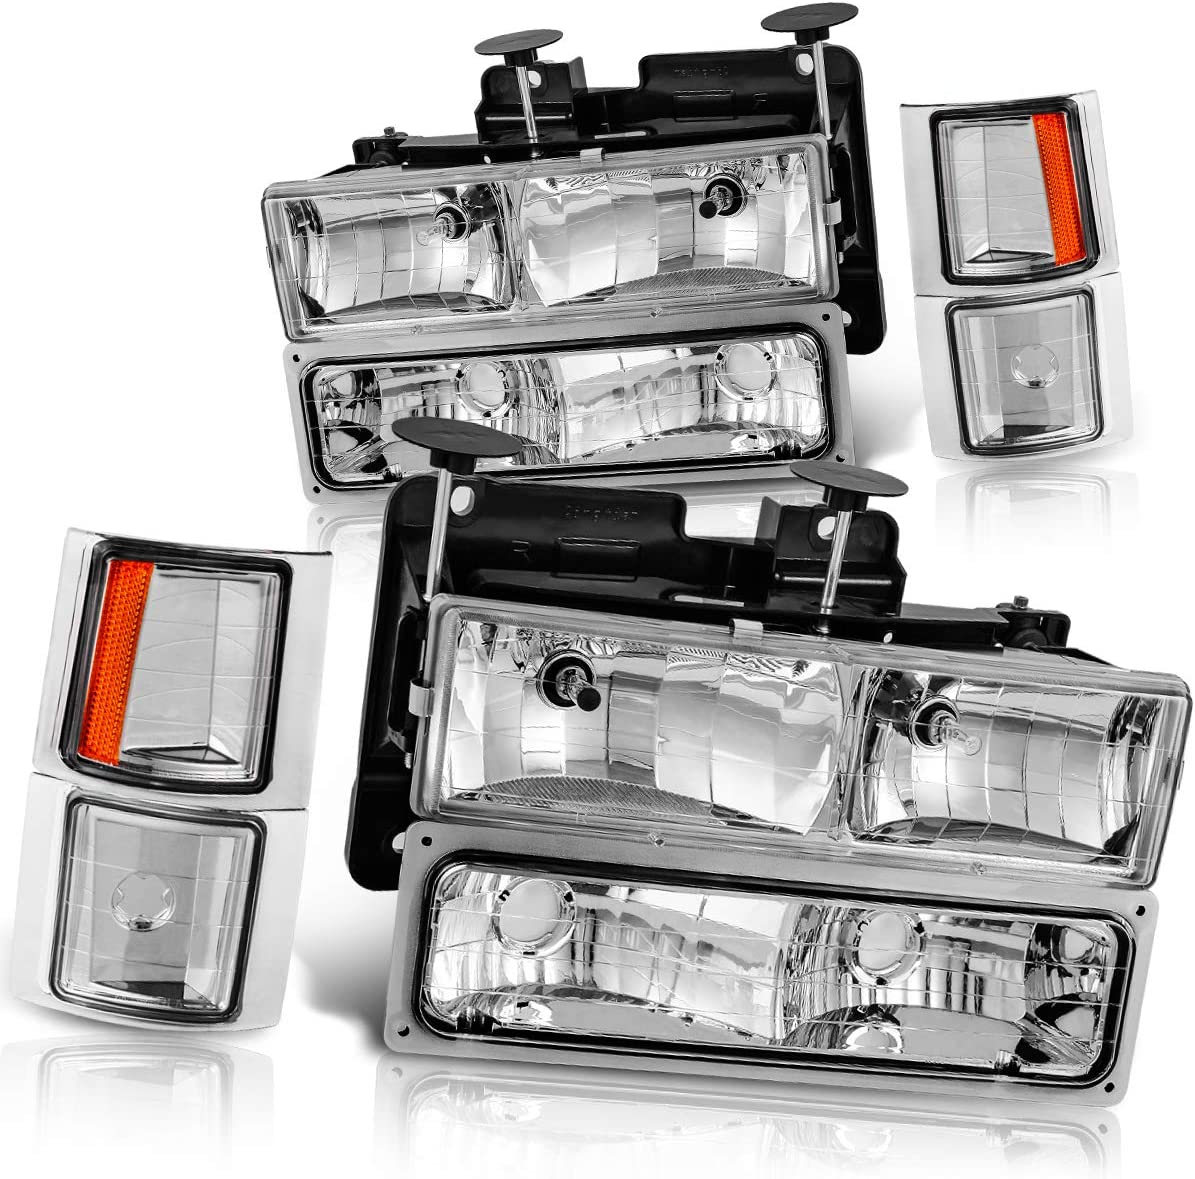 Chevy Tahoe //C//k Series 1500//2500//3500 Chevy C//k Series 1500//2500//3500 Chevy Suburban Chevy Suburban Crystal Headlights w// Corner /& Bumper Black Housing with Clear Lens Chevy Silverado